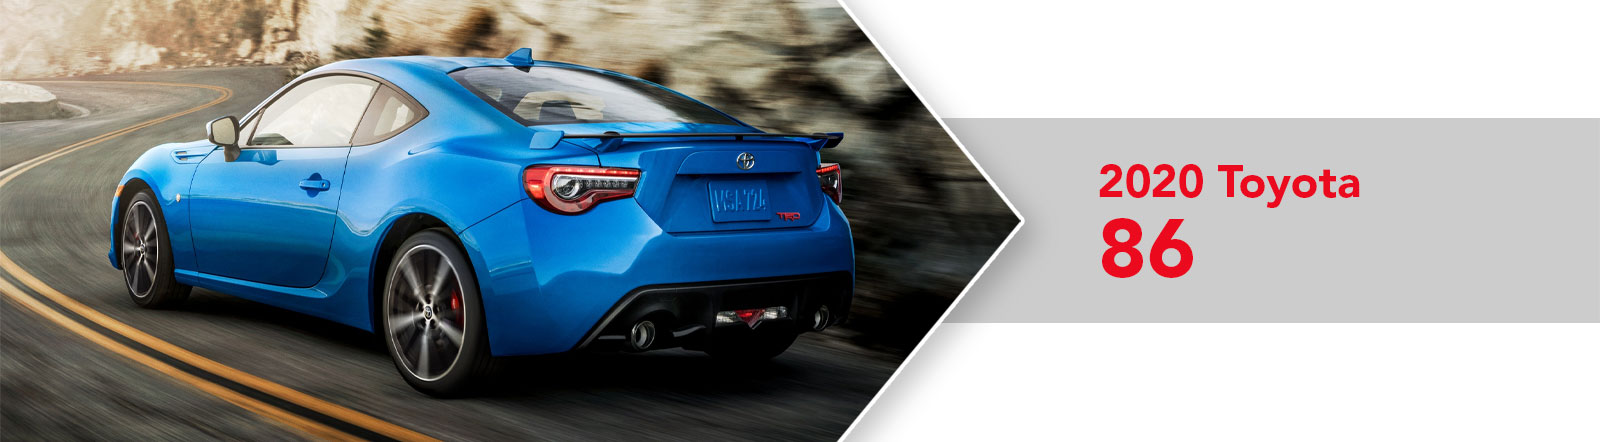 All-New 2020 Toyota 86 For Sale in Metairie, LA